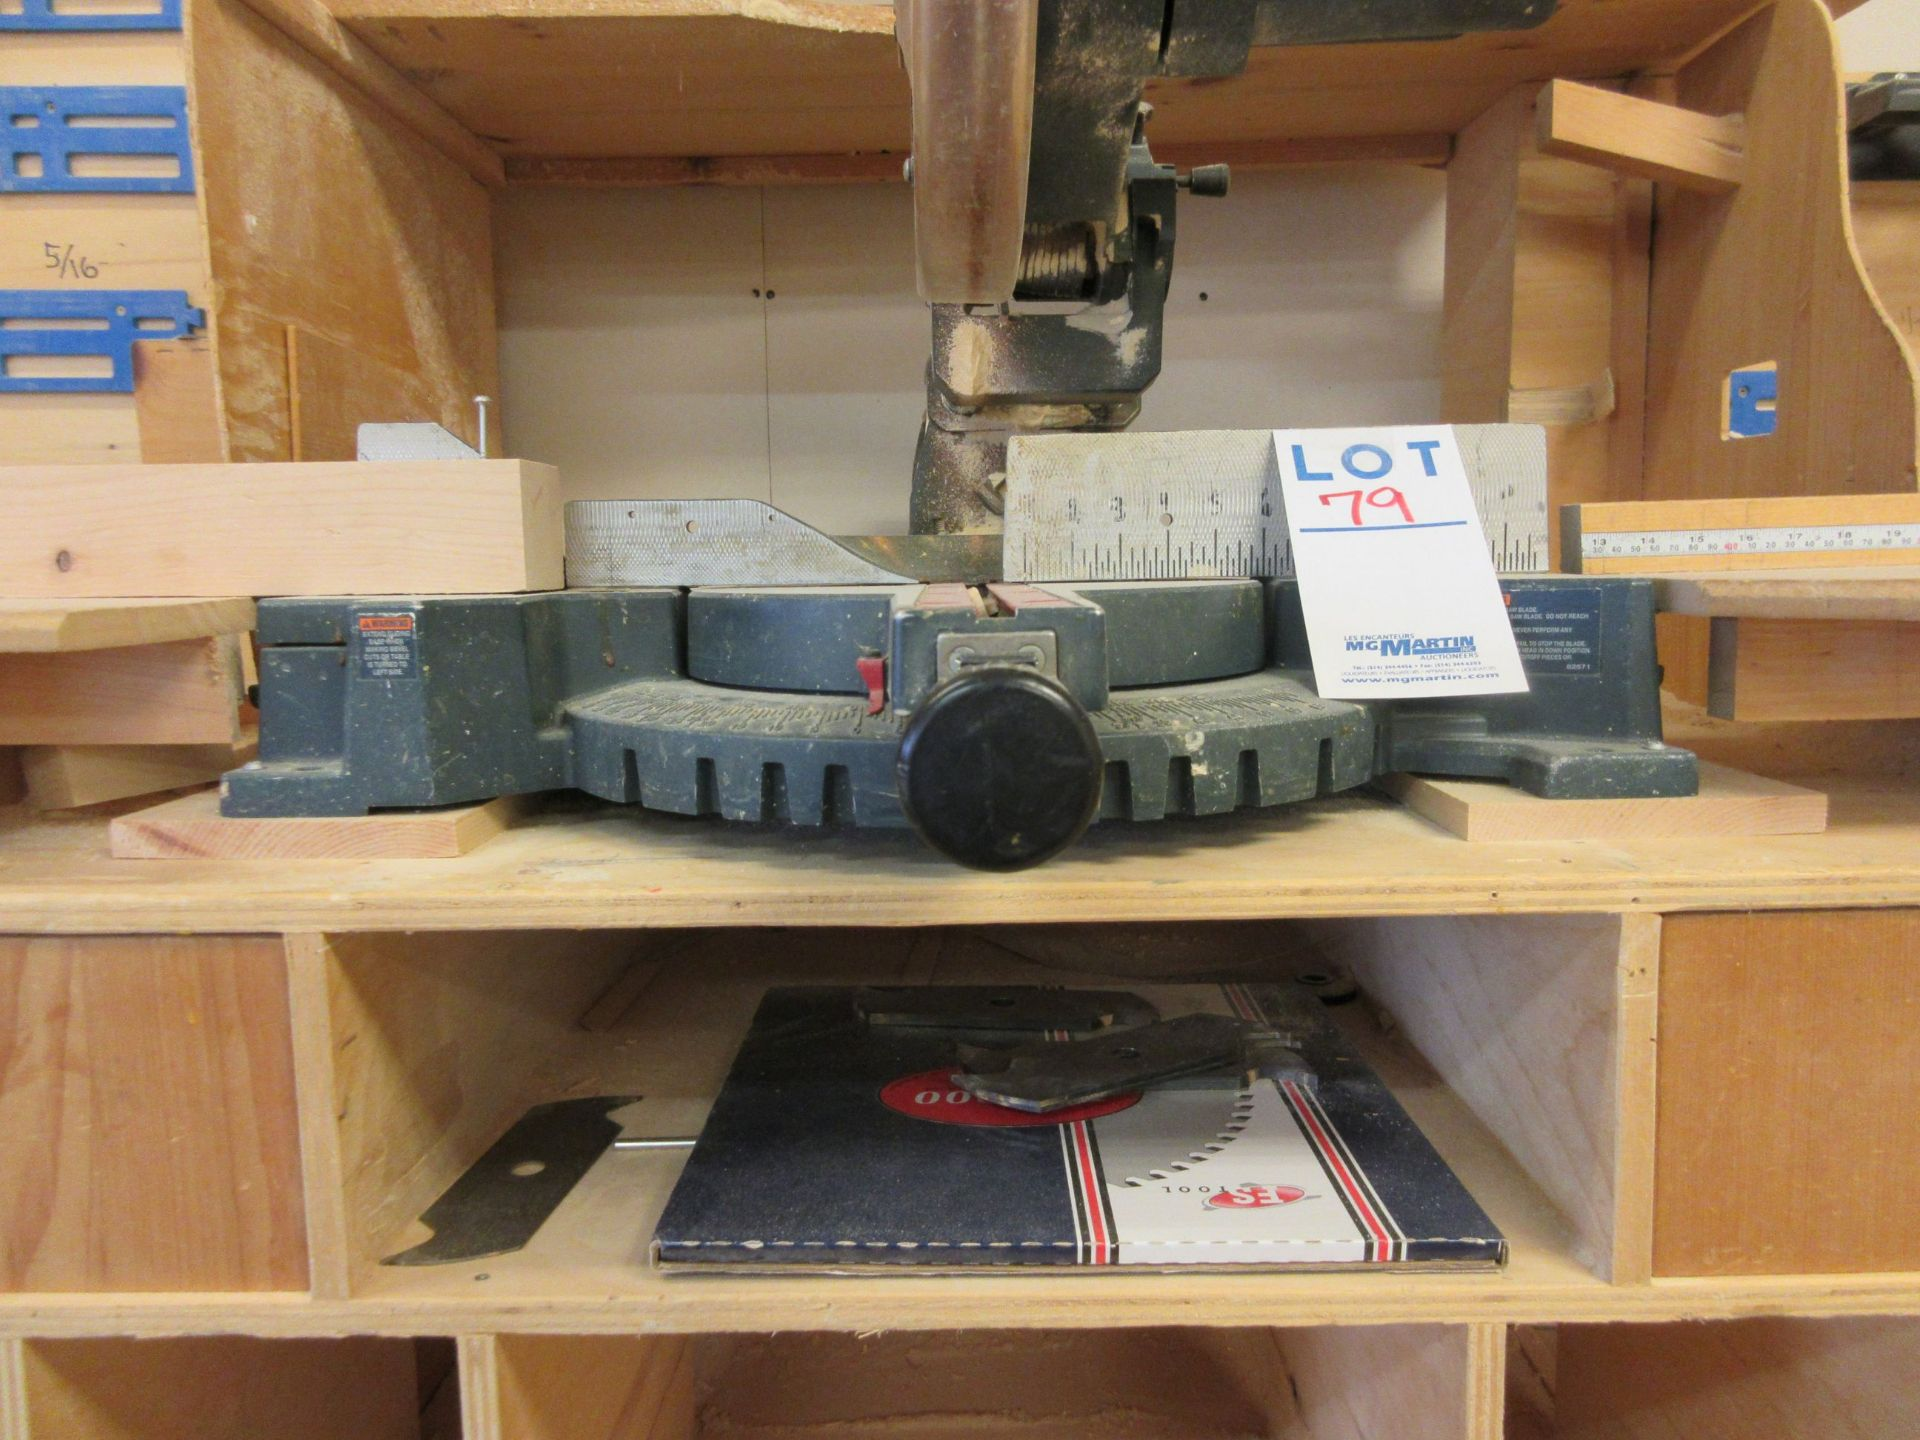 BOSCH Miter saw, Mod: 3915 c/w work table - Image 4 of 4